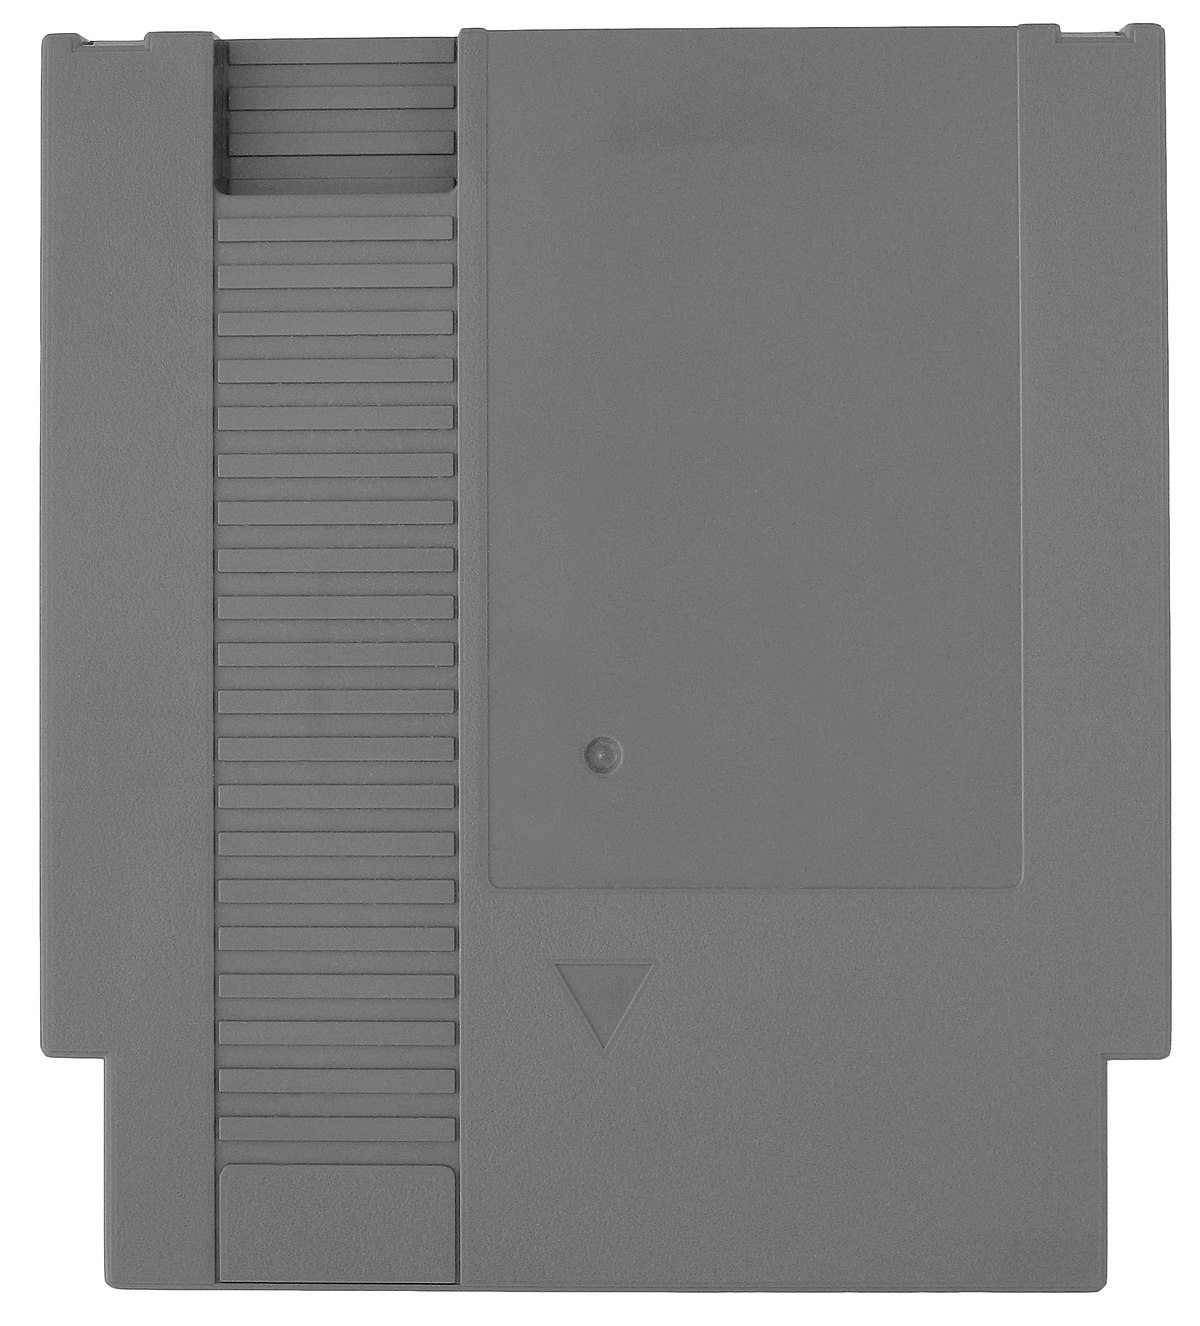 Nintendo Entertainment System Game Pak - Wikipedia